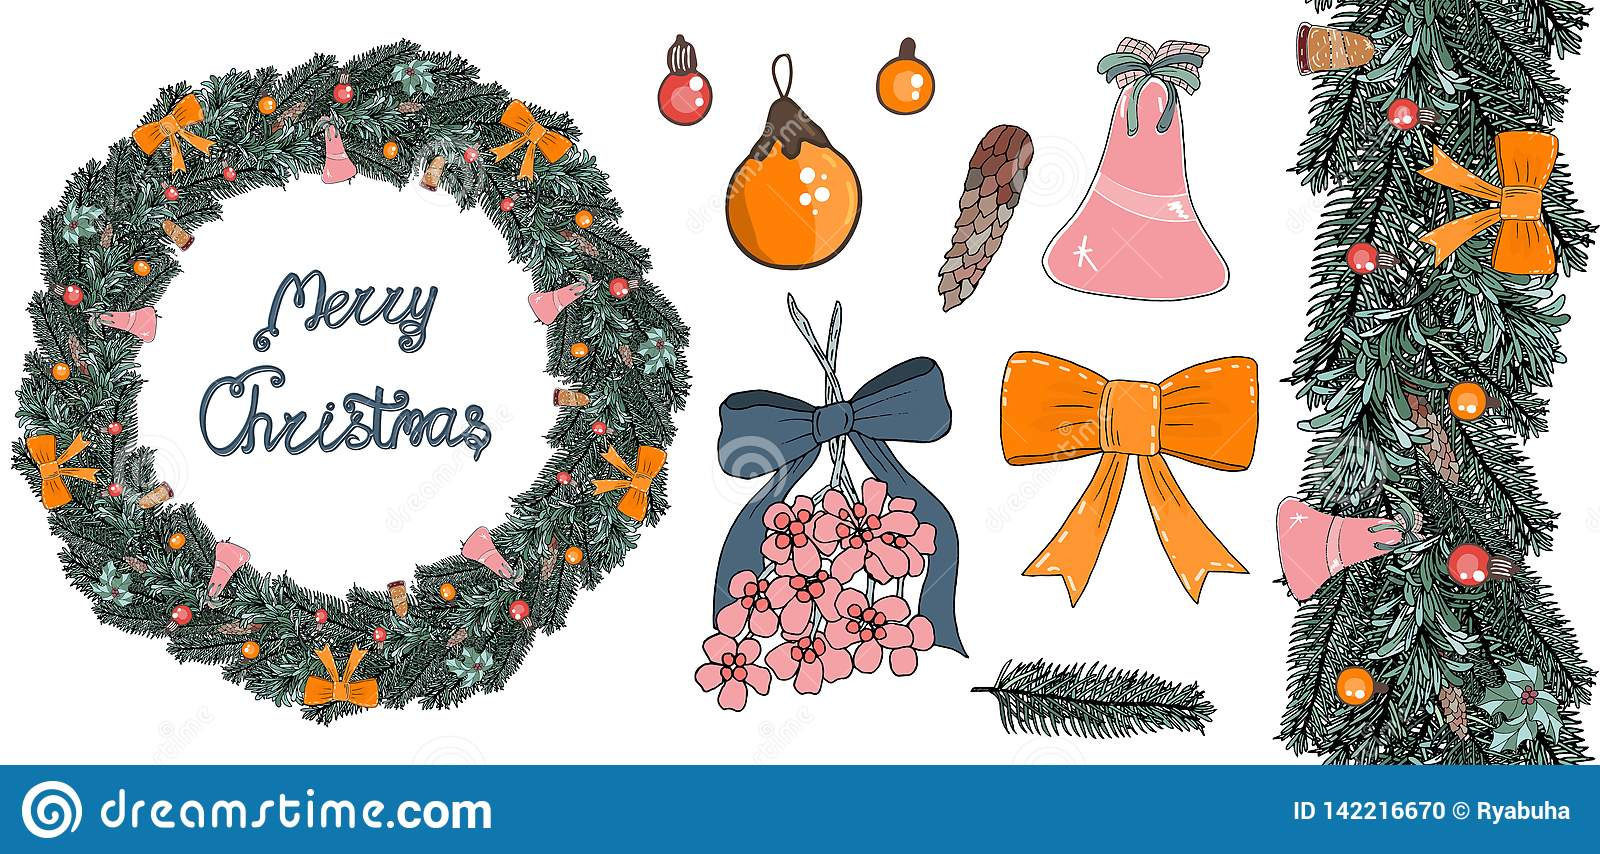 A wreath of fir branches with balls, bows and bells